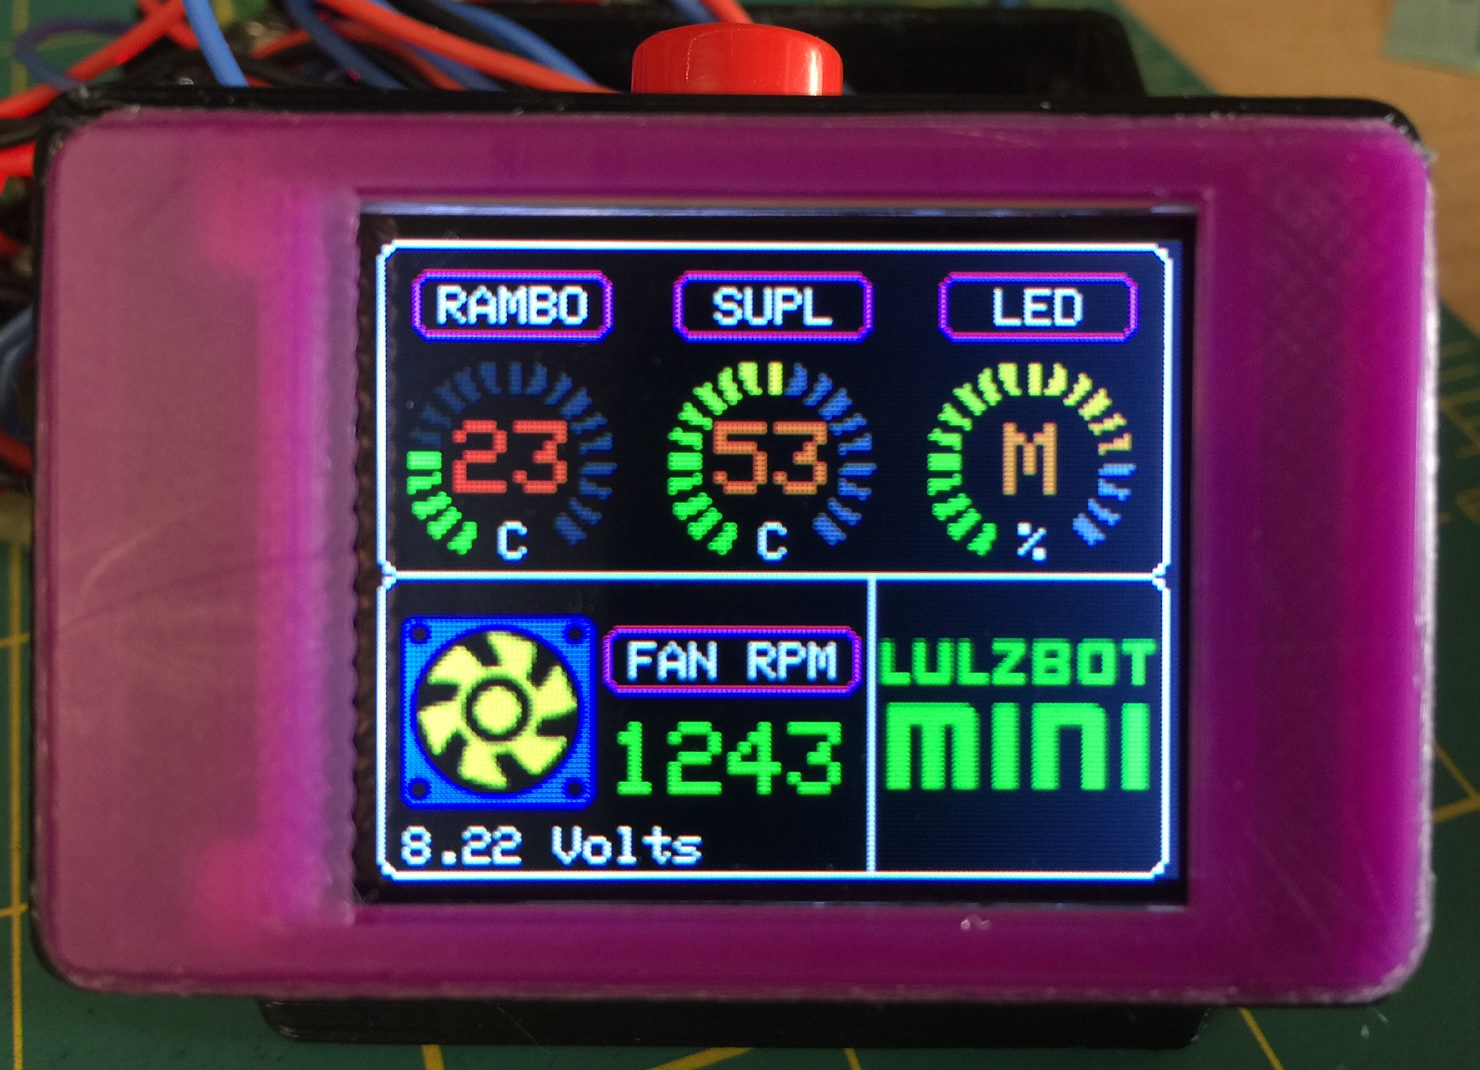 Lulzbot mini arduino temp monitor fan led controller